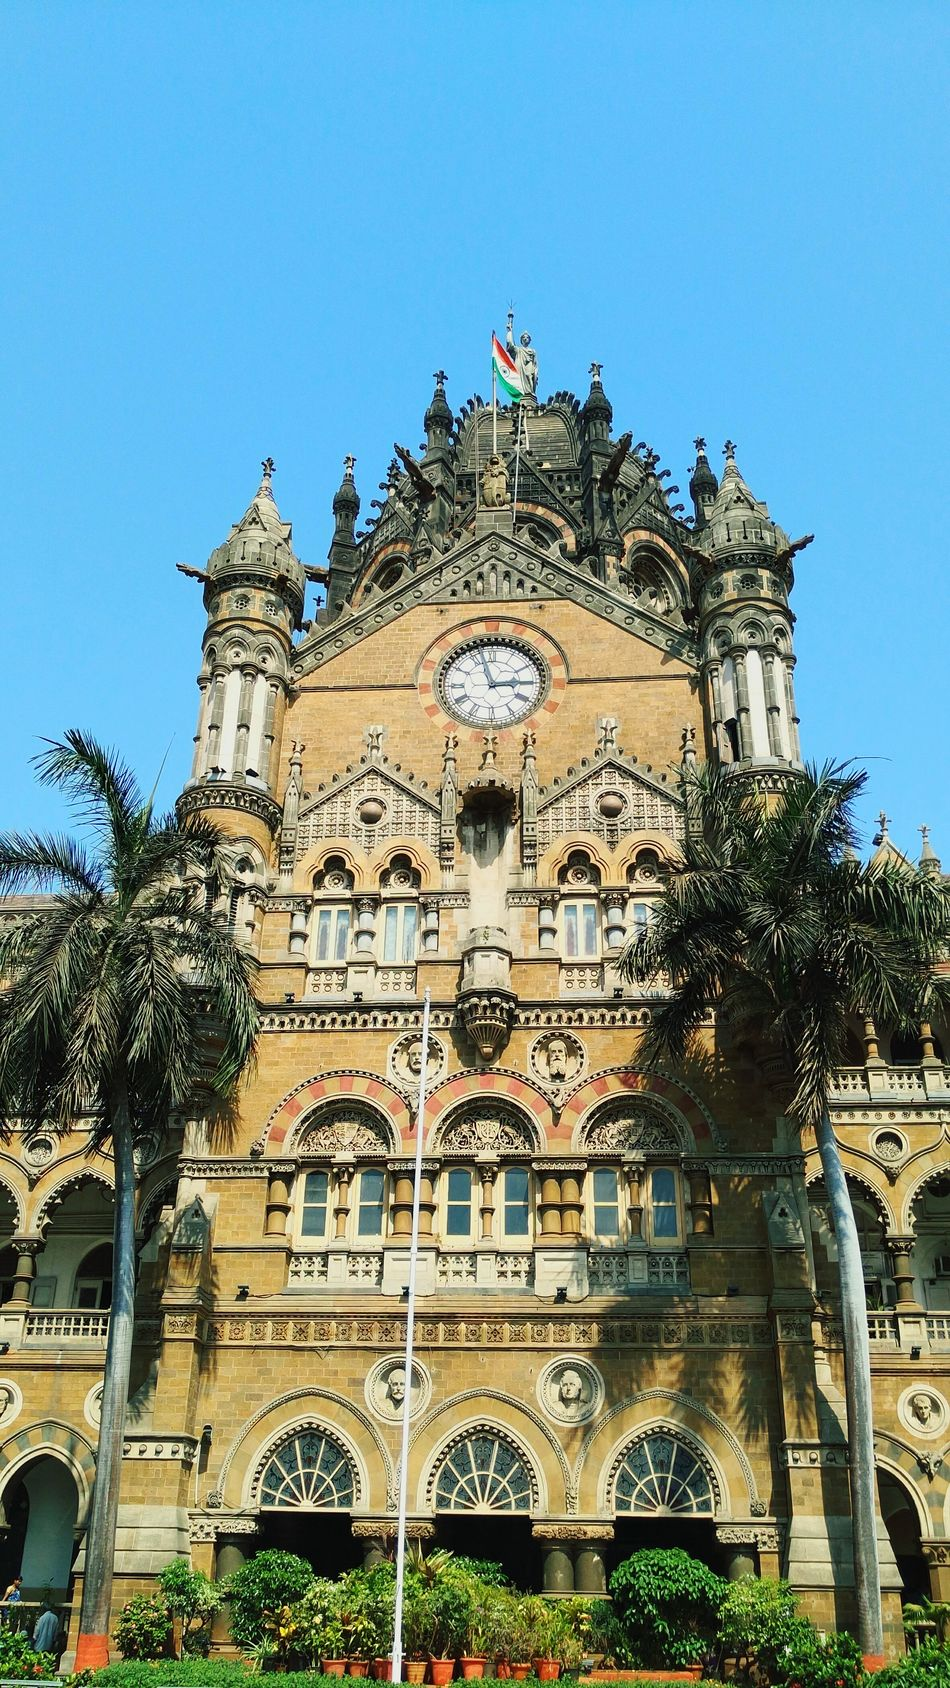 Chatrapati Shivaji Terminus Mumbai Maharashtra clear sky blue building architecture British construction monument landmark public property headquarters Building Exterior City Outdoors No People Day Sky Travel Destinations Architecture